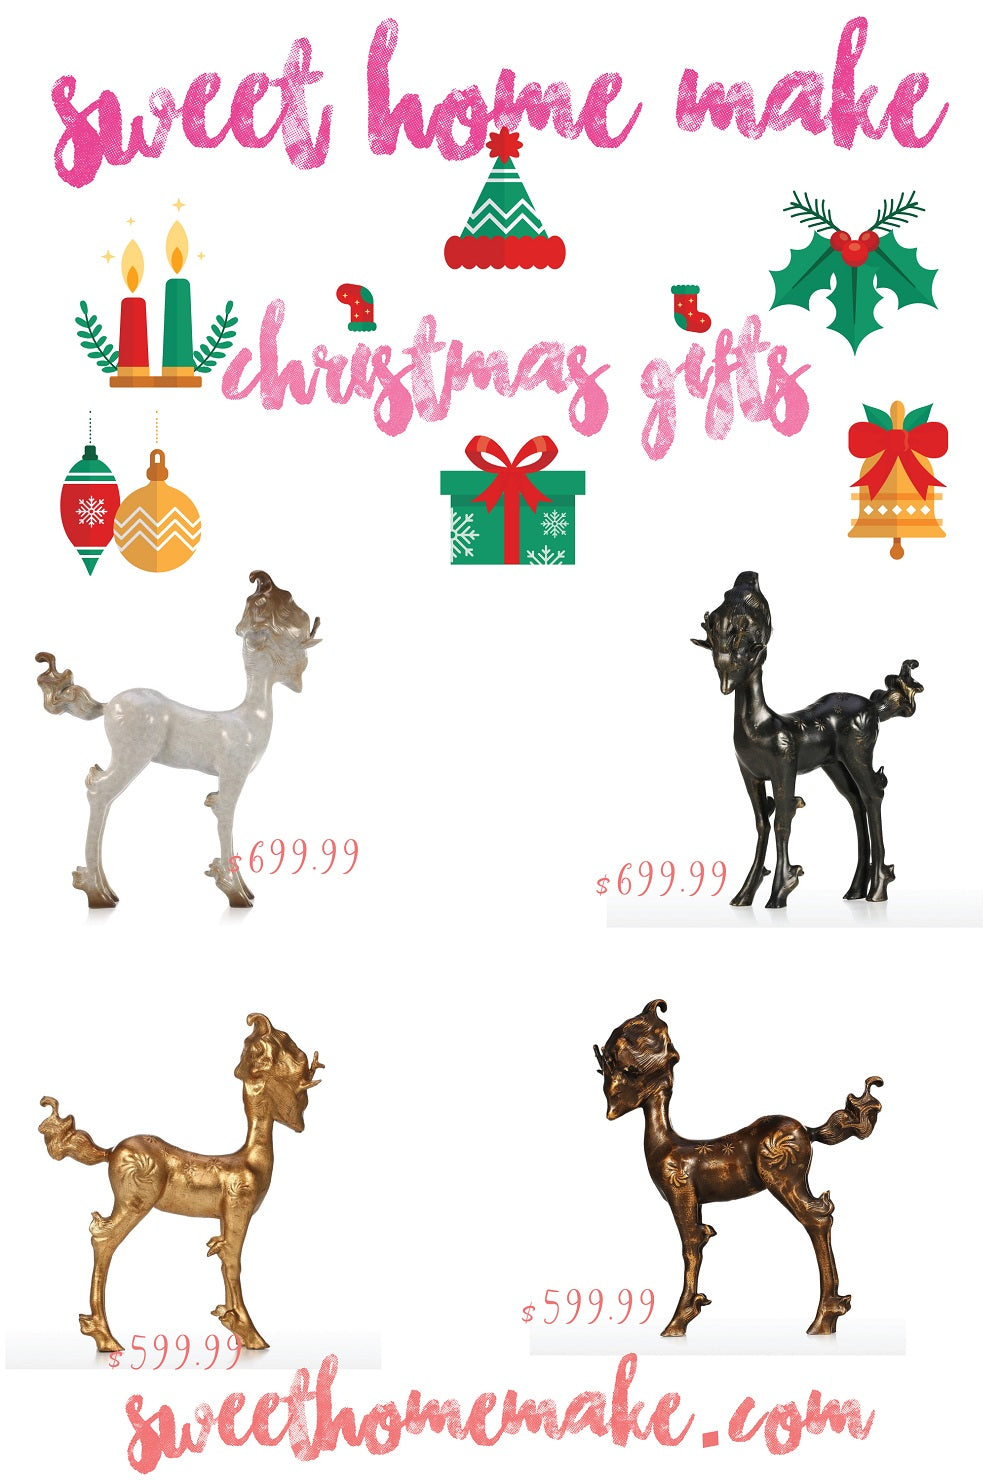 Christmas Decorations and Christmas Ornaments with Christmas Deer